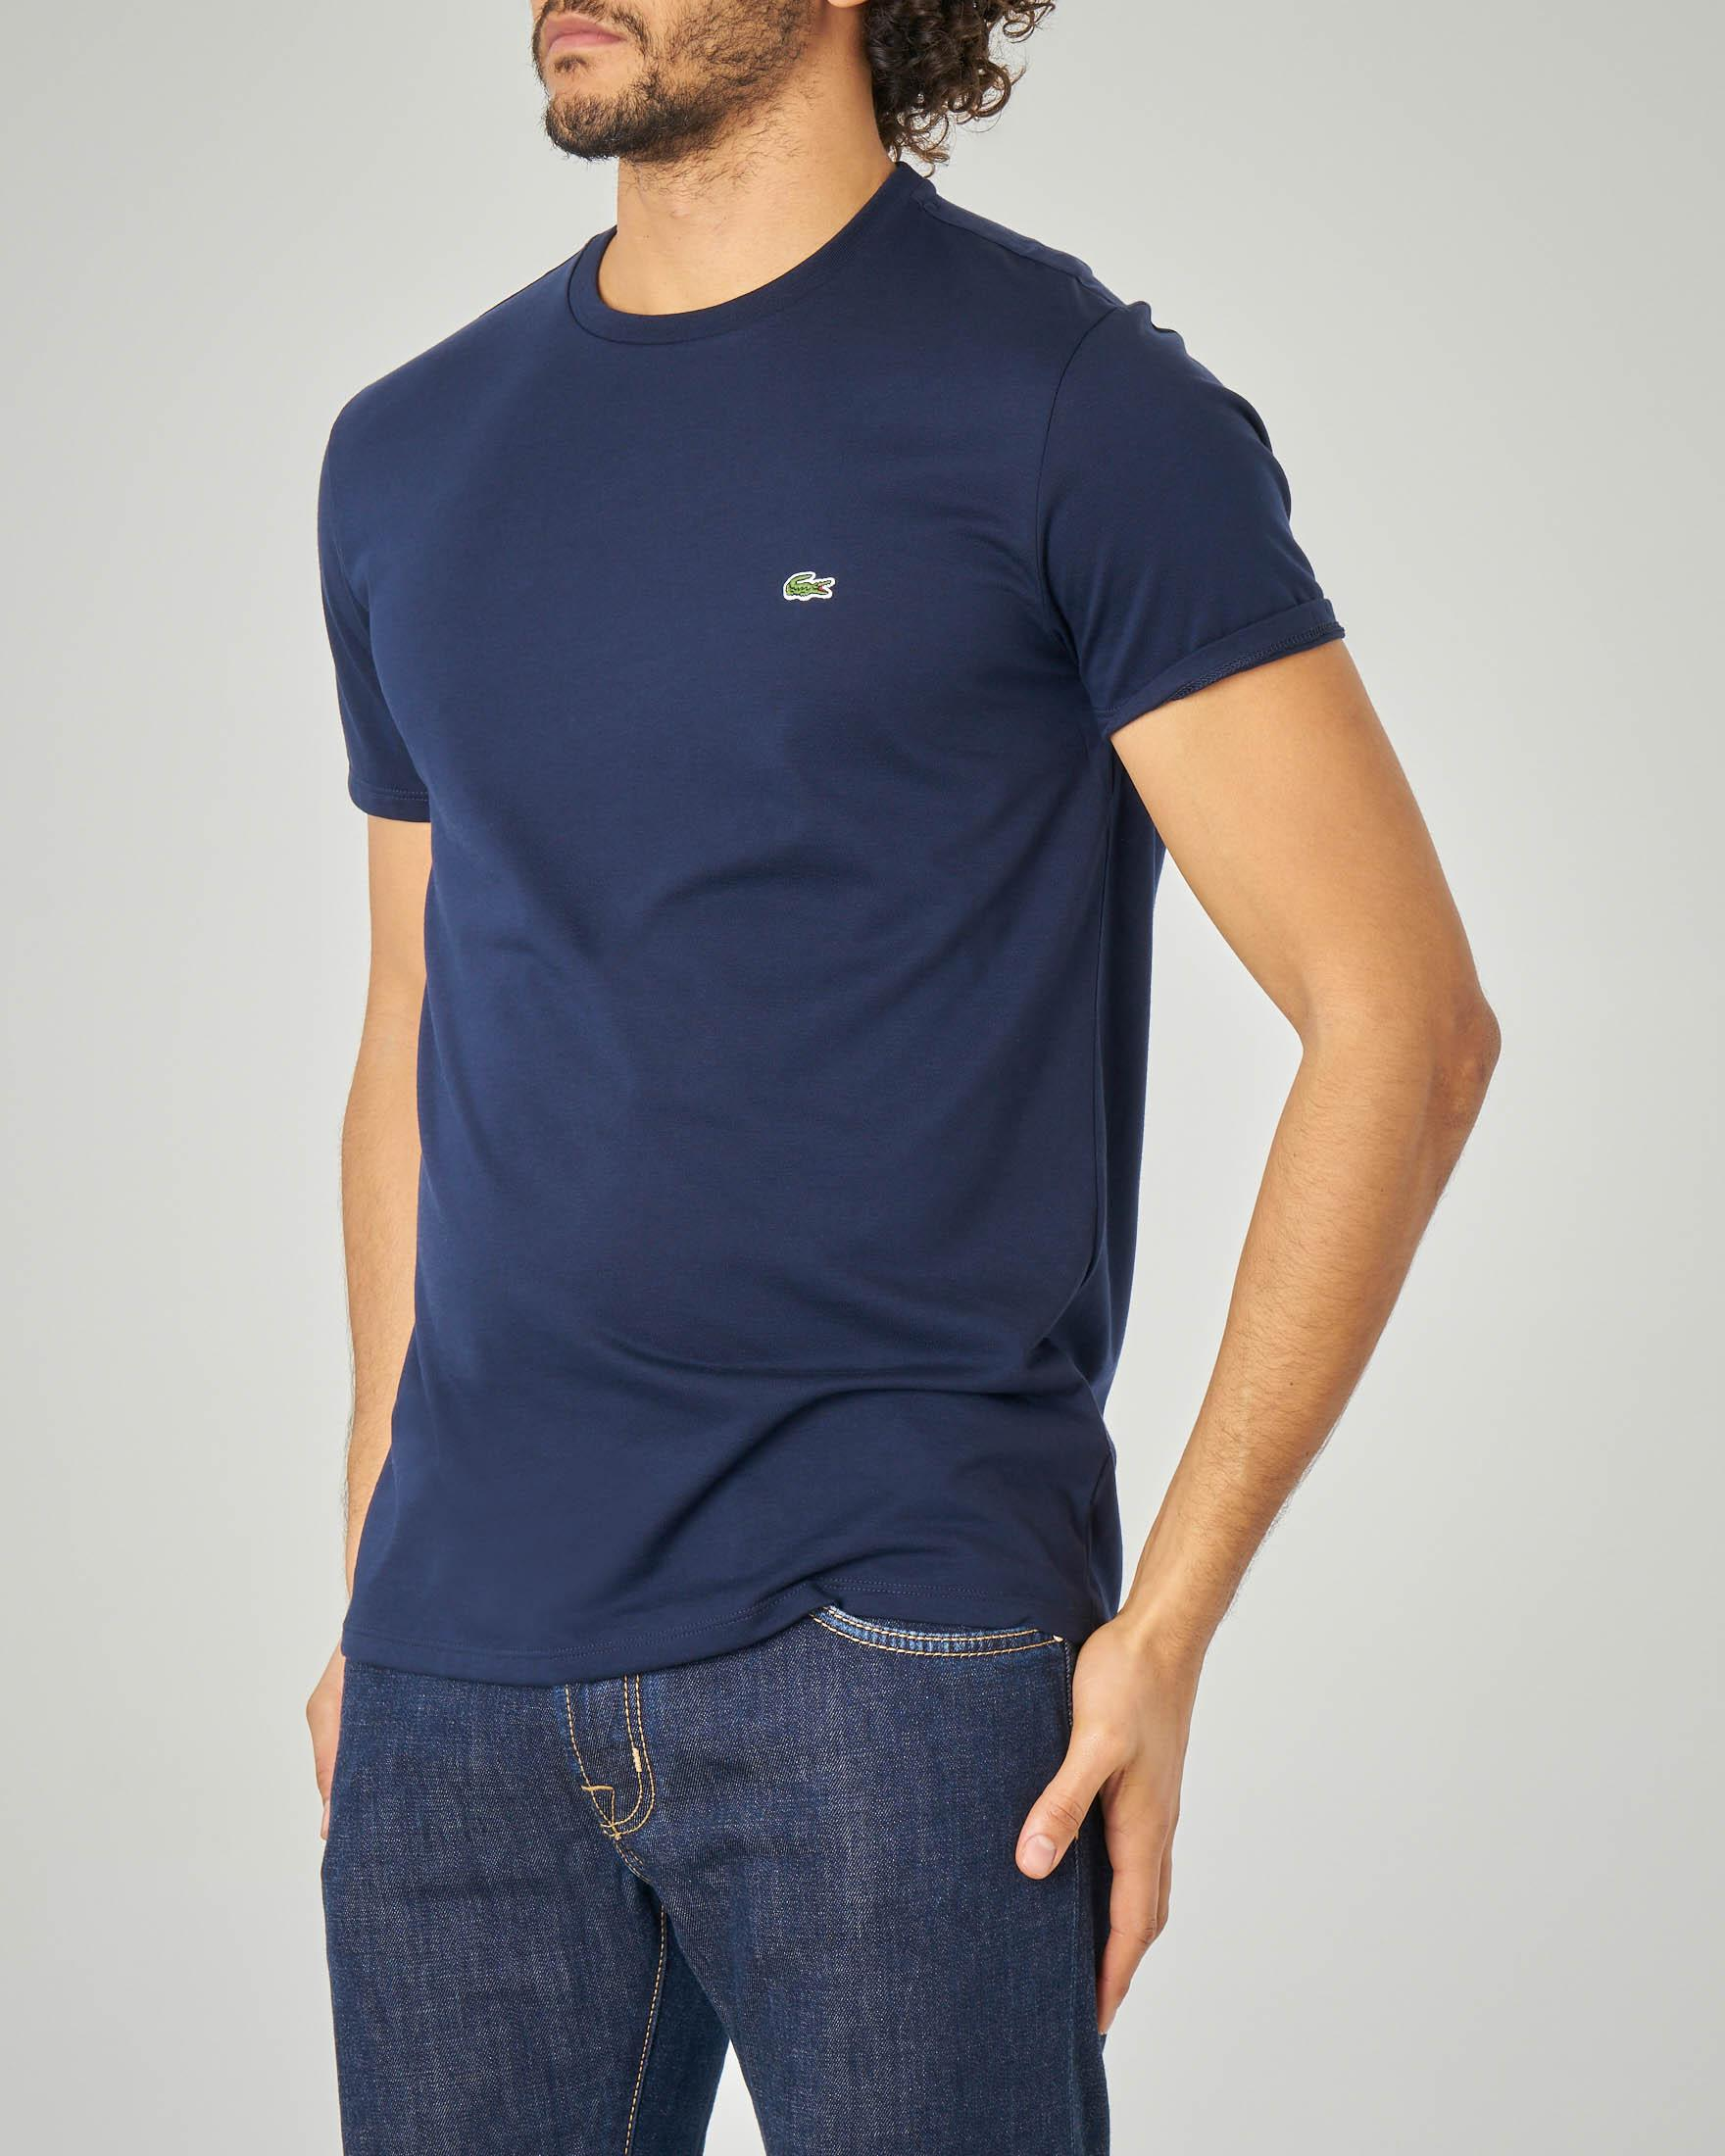 T-shirt blu in pima cotton con logo coccodrillo verde